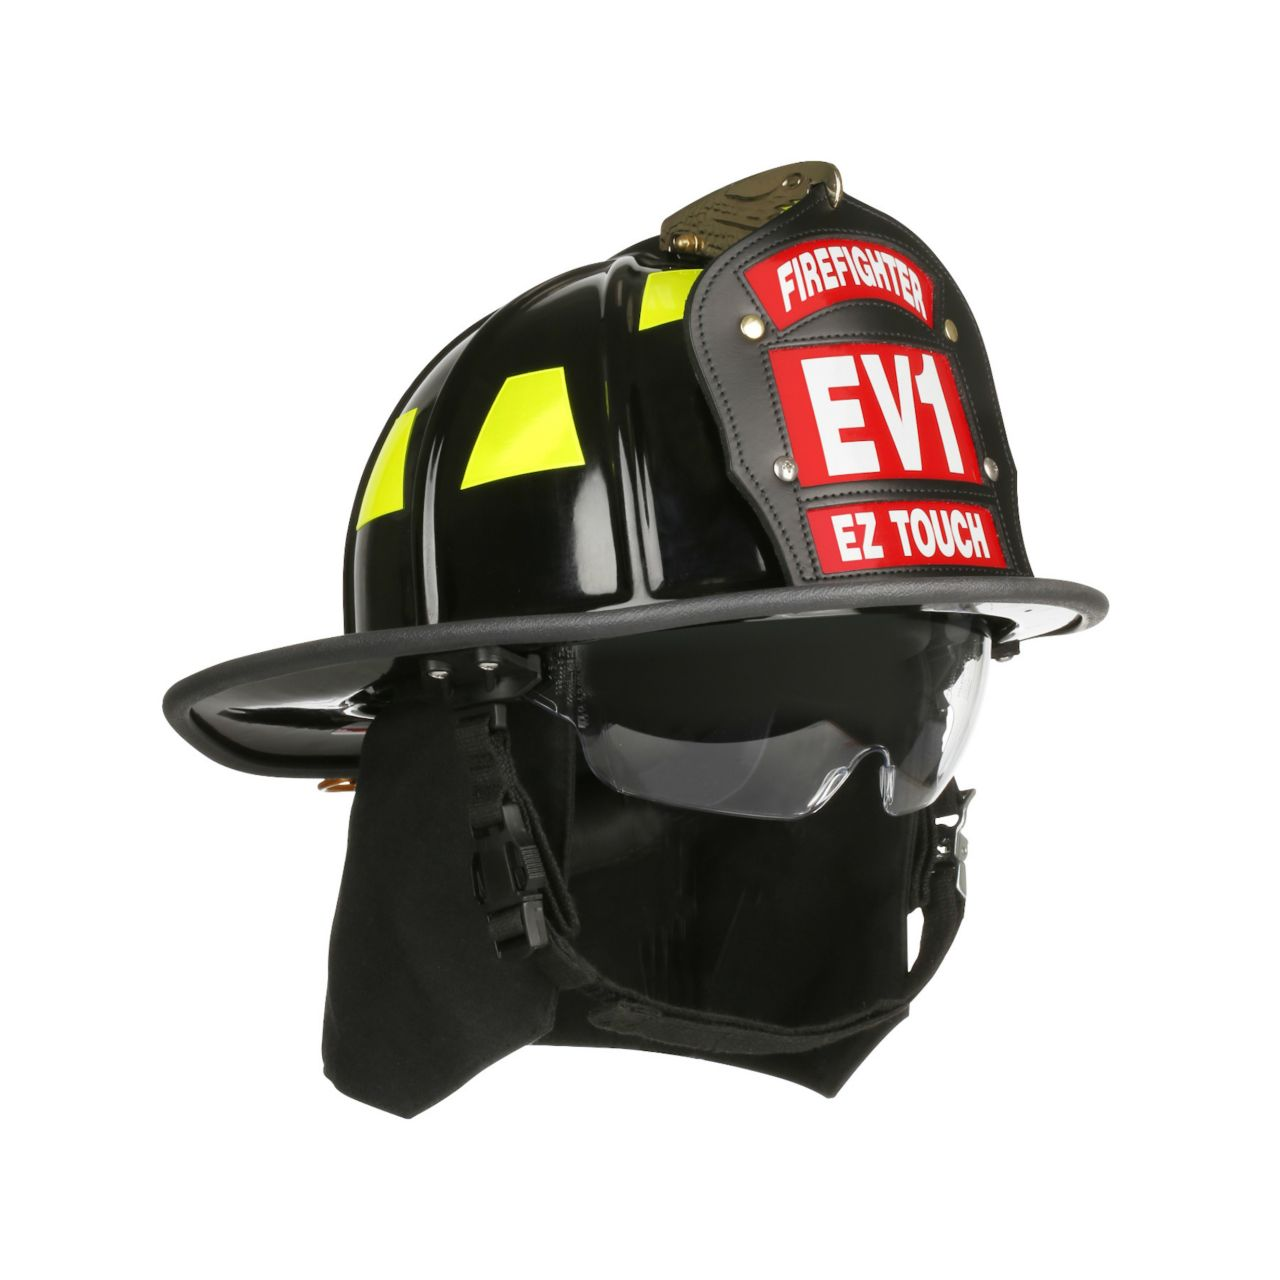 his-product-bycategory-firstresponder-ev1traditional-3000x3000-2